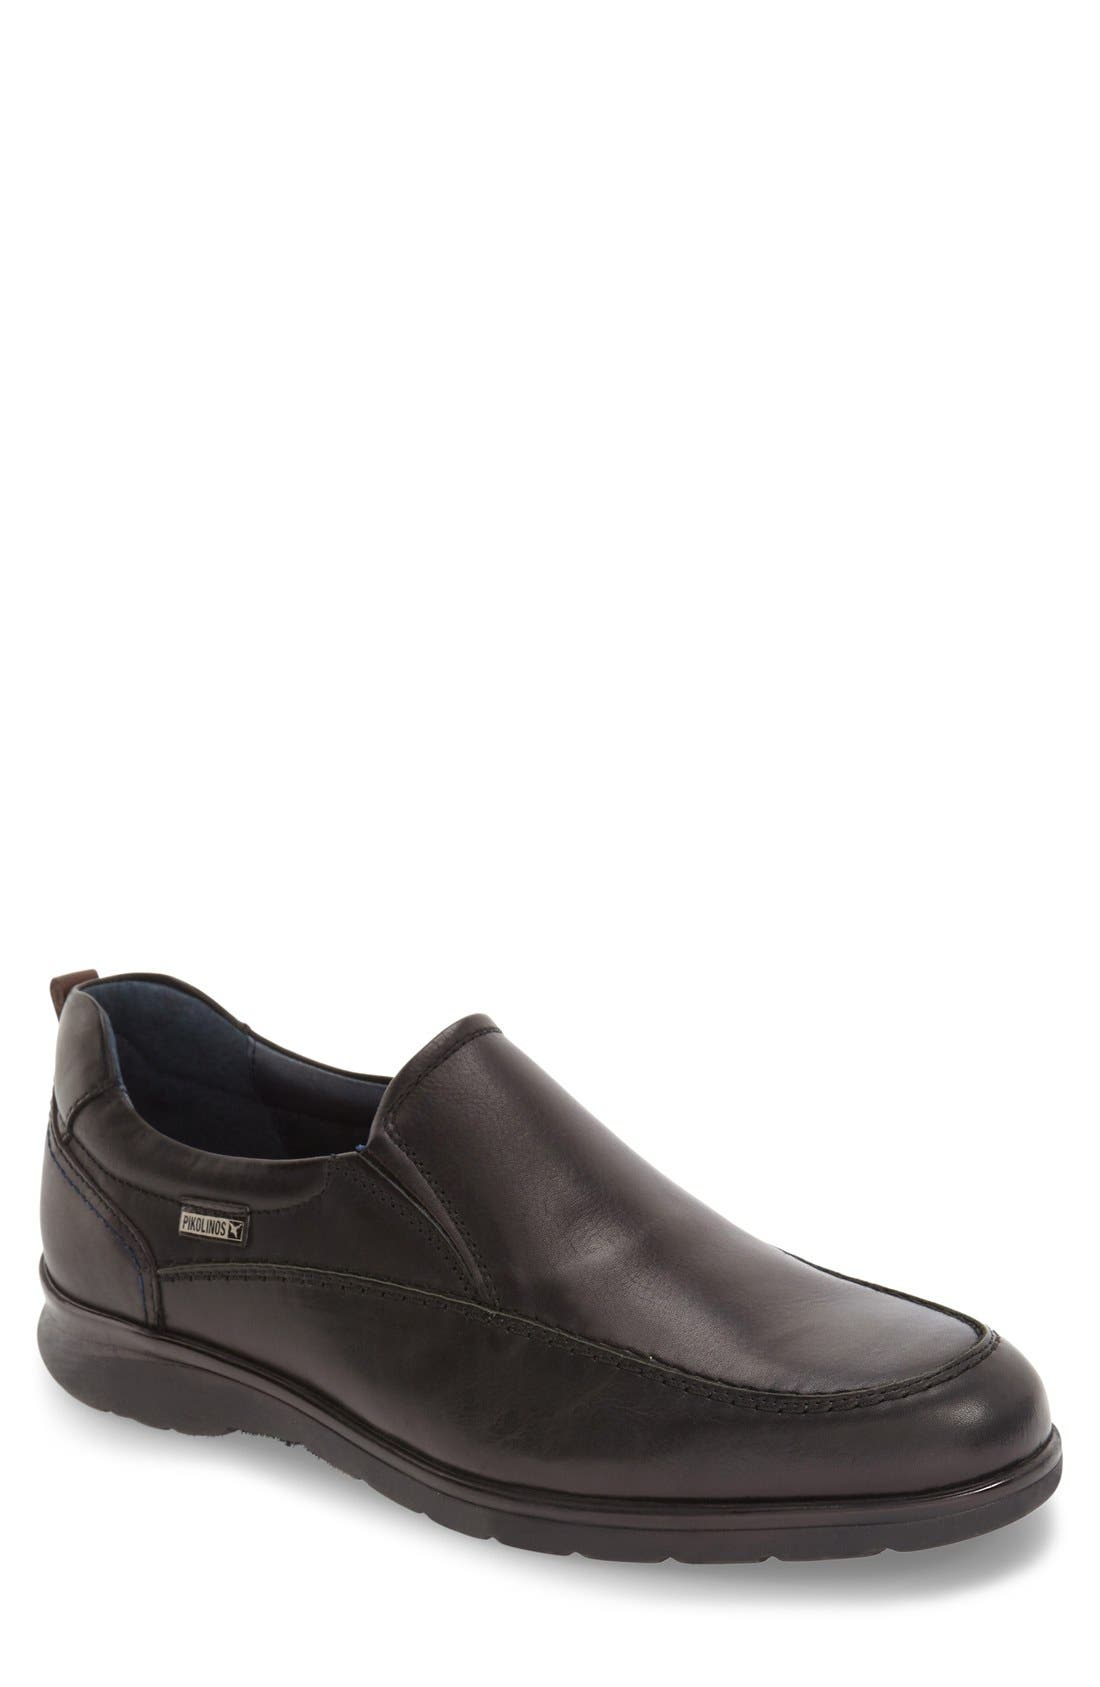 'San Lorenzo' Slip-On,                             Main thumbnail 1, color,                             Black Leather